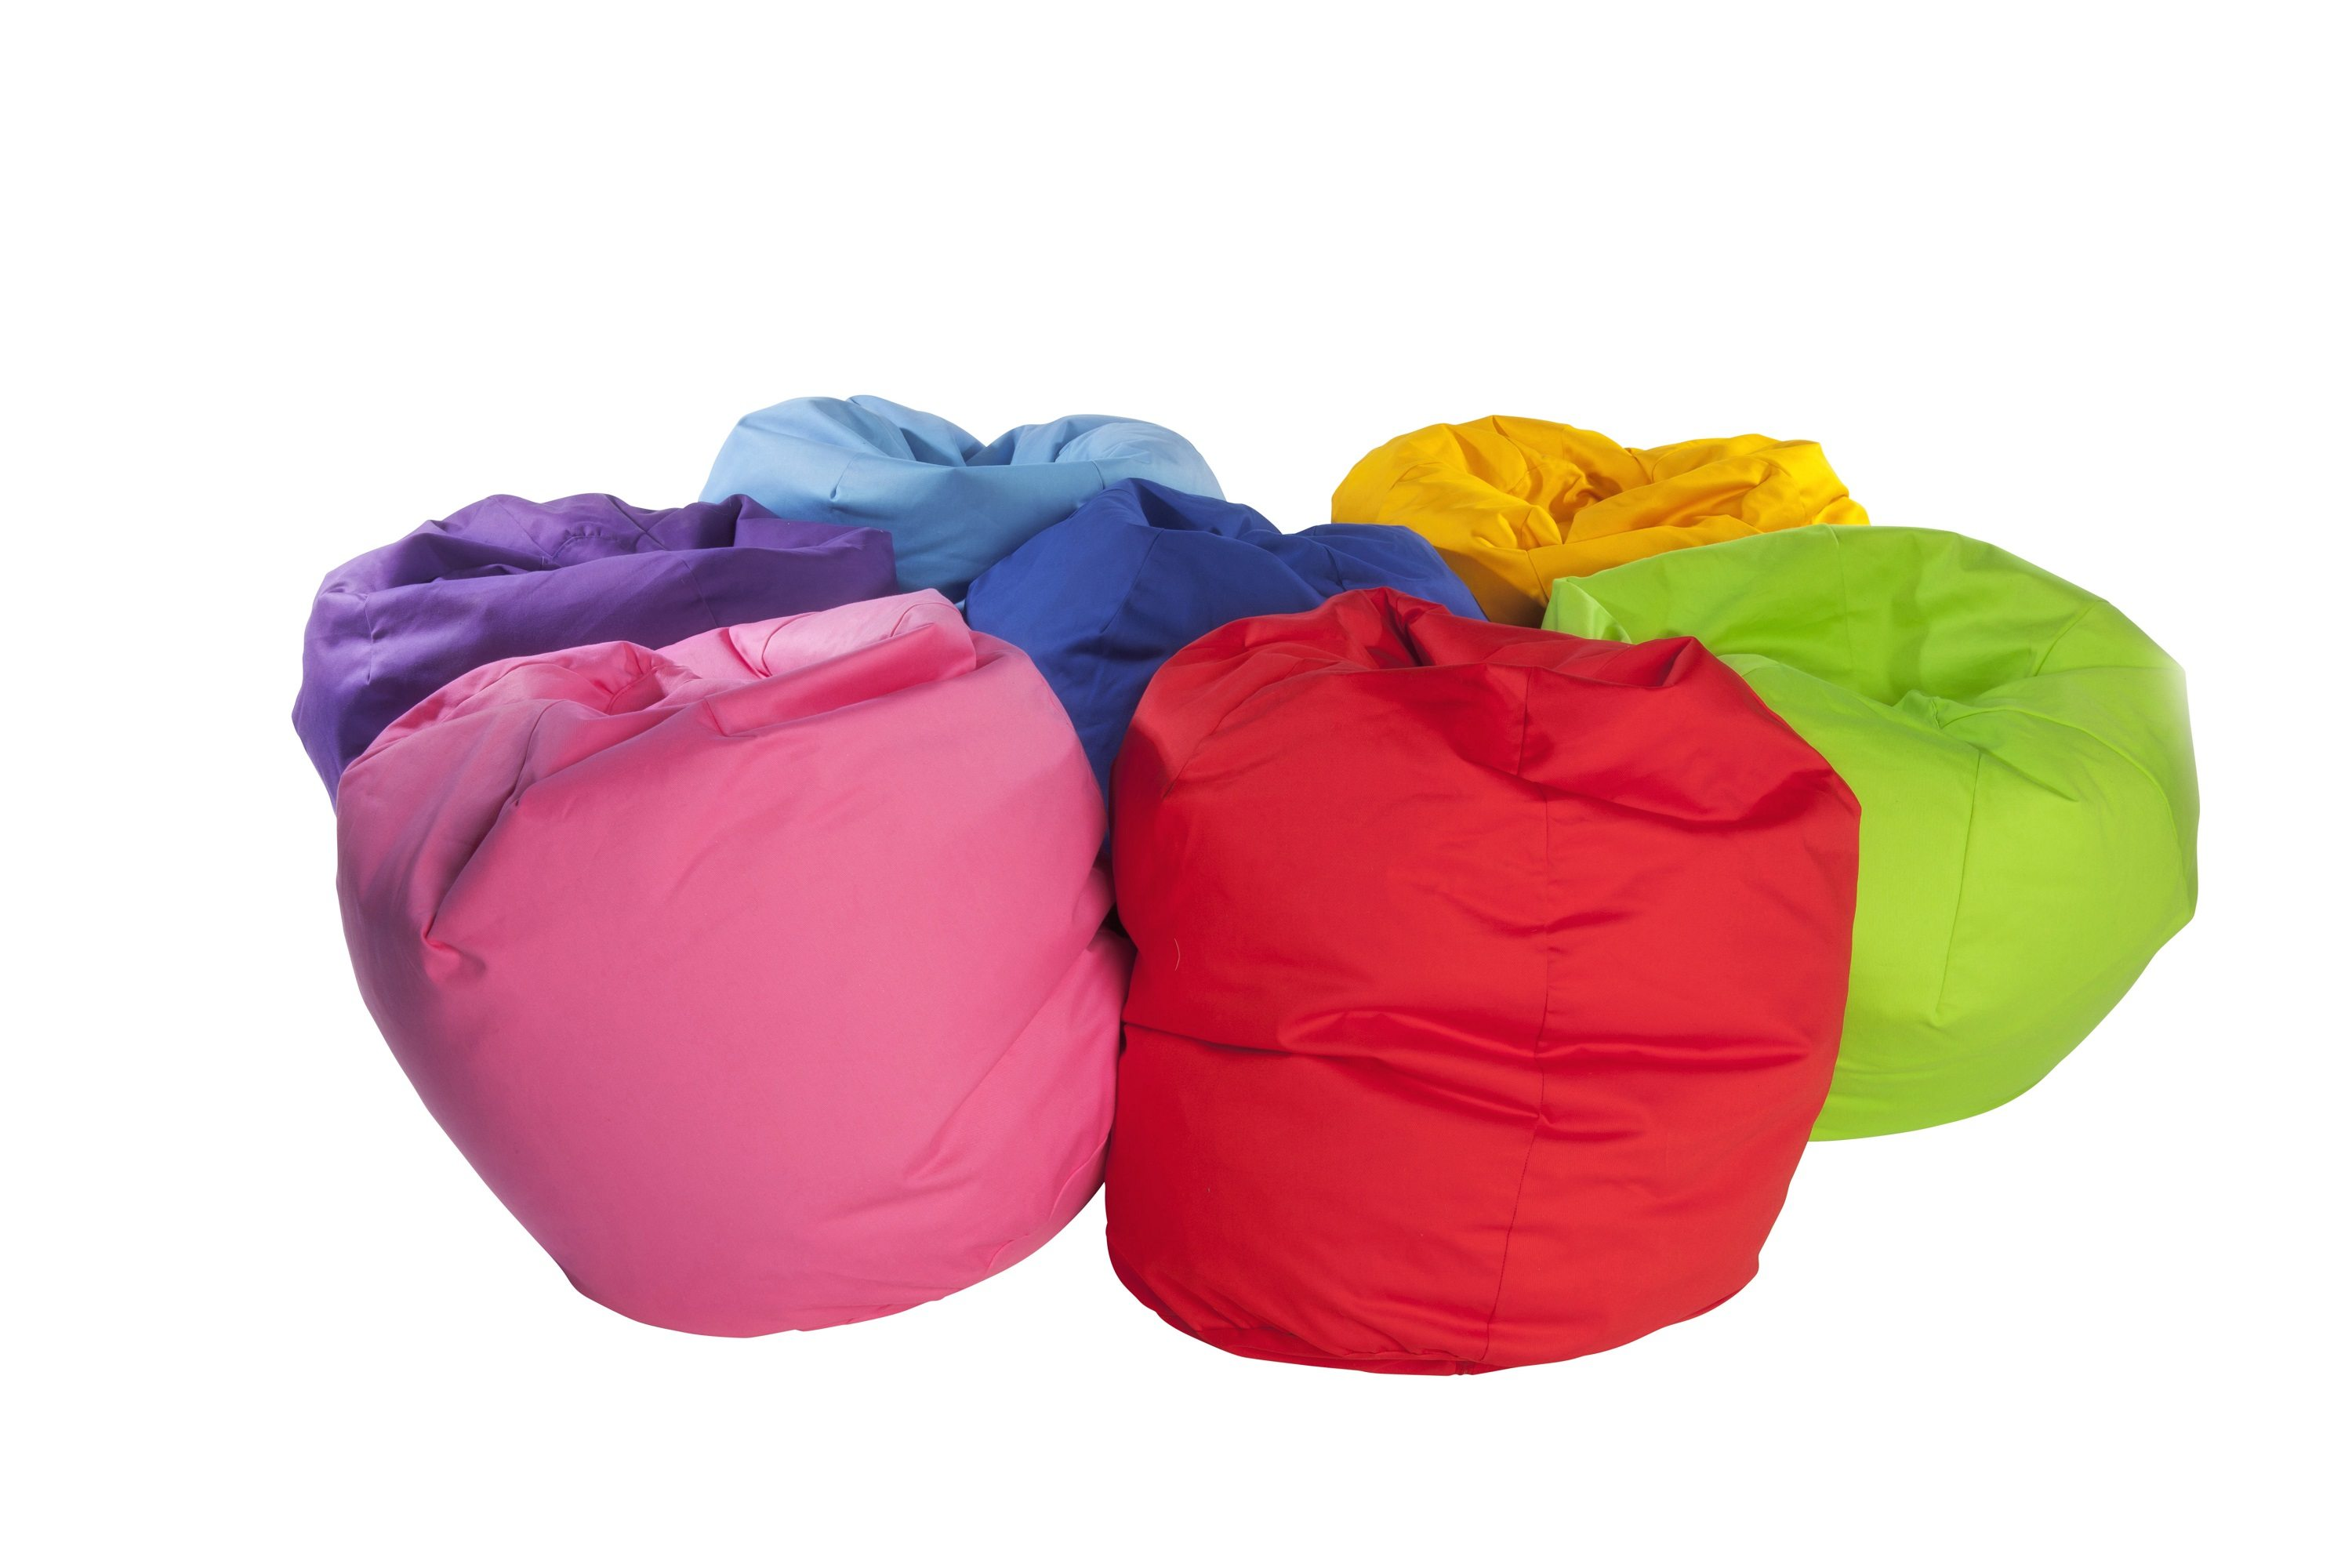 giant child bean bags cotton buy online today at. Black Bedroom Furniture Sets. Home Design Ideas